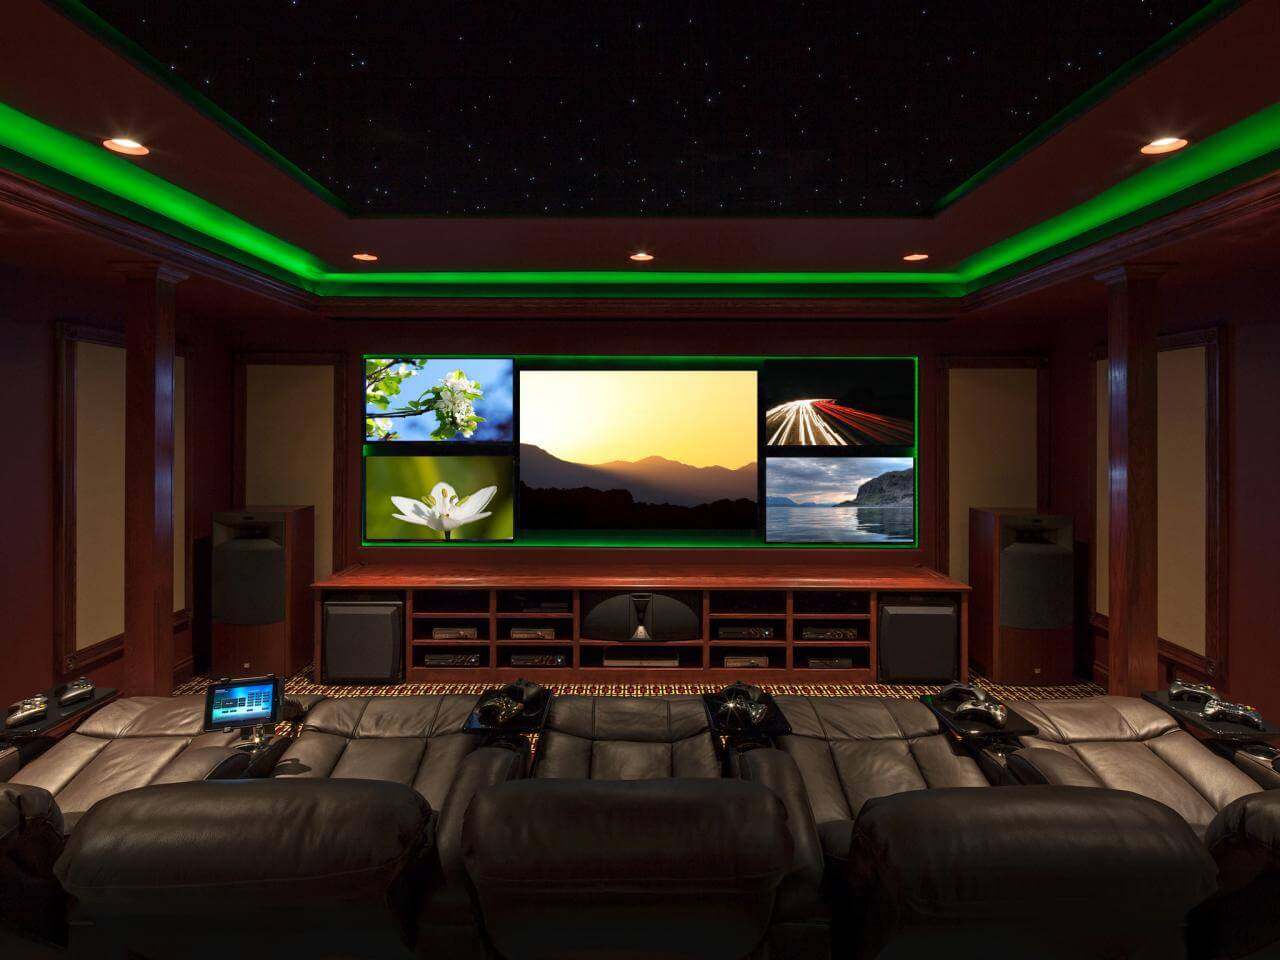 50+ Best Setup of Video Game Room Ideas [A Gamer's Guide] Old Home Theatre Design on old home design, old hospital design, old restaurant design, old fire station design, old english design, old tavern design, old world design, old athletics design, arsenic and old lace set design, old factory design, old german design, old leather design, old church design, old hawaii design, old spanish design, old library design, old french design, old games design, old hollywood design, old interior design,